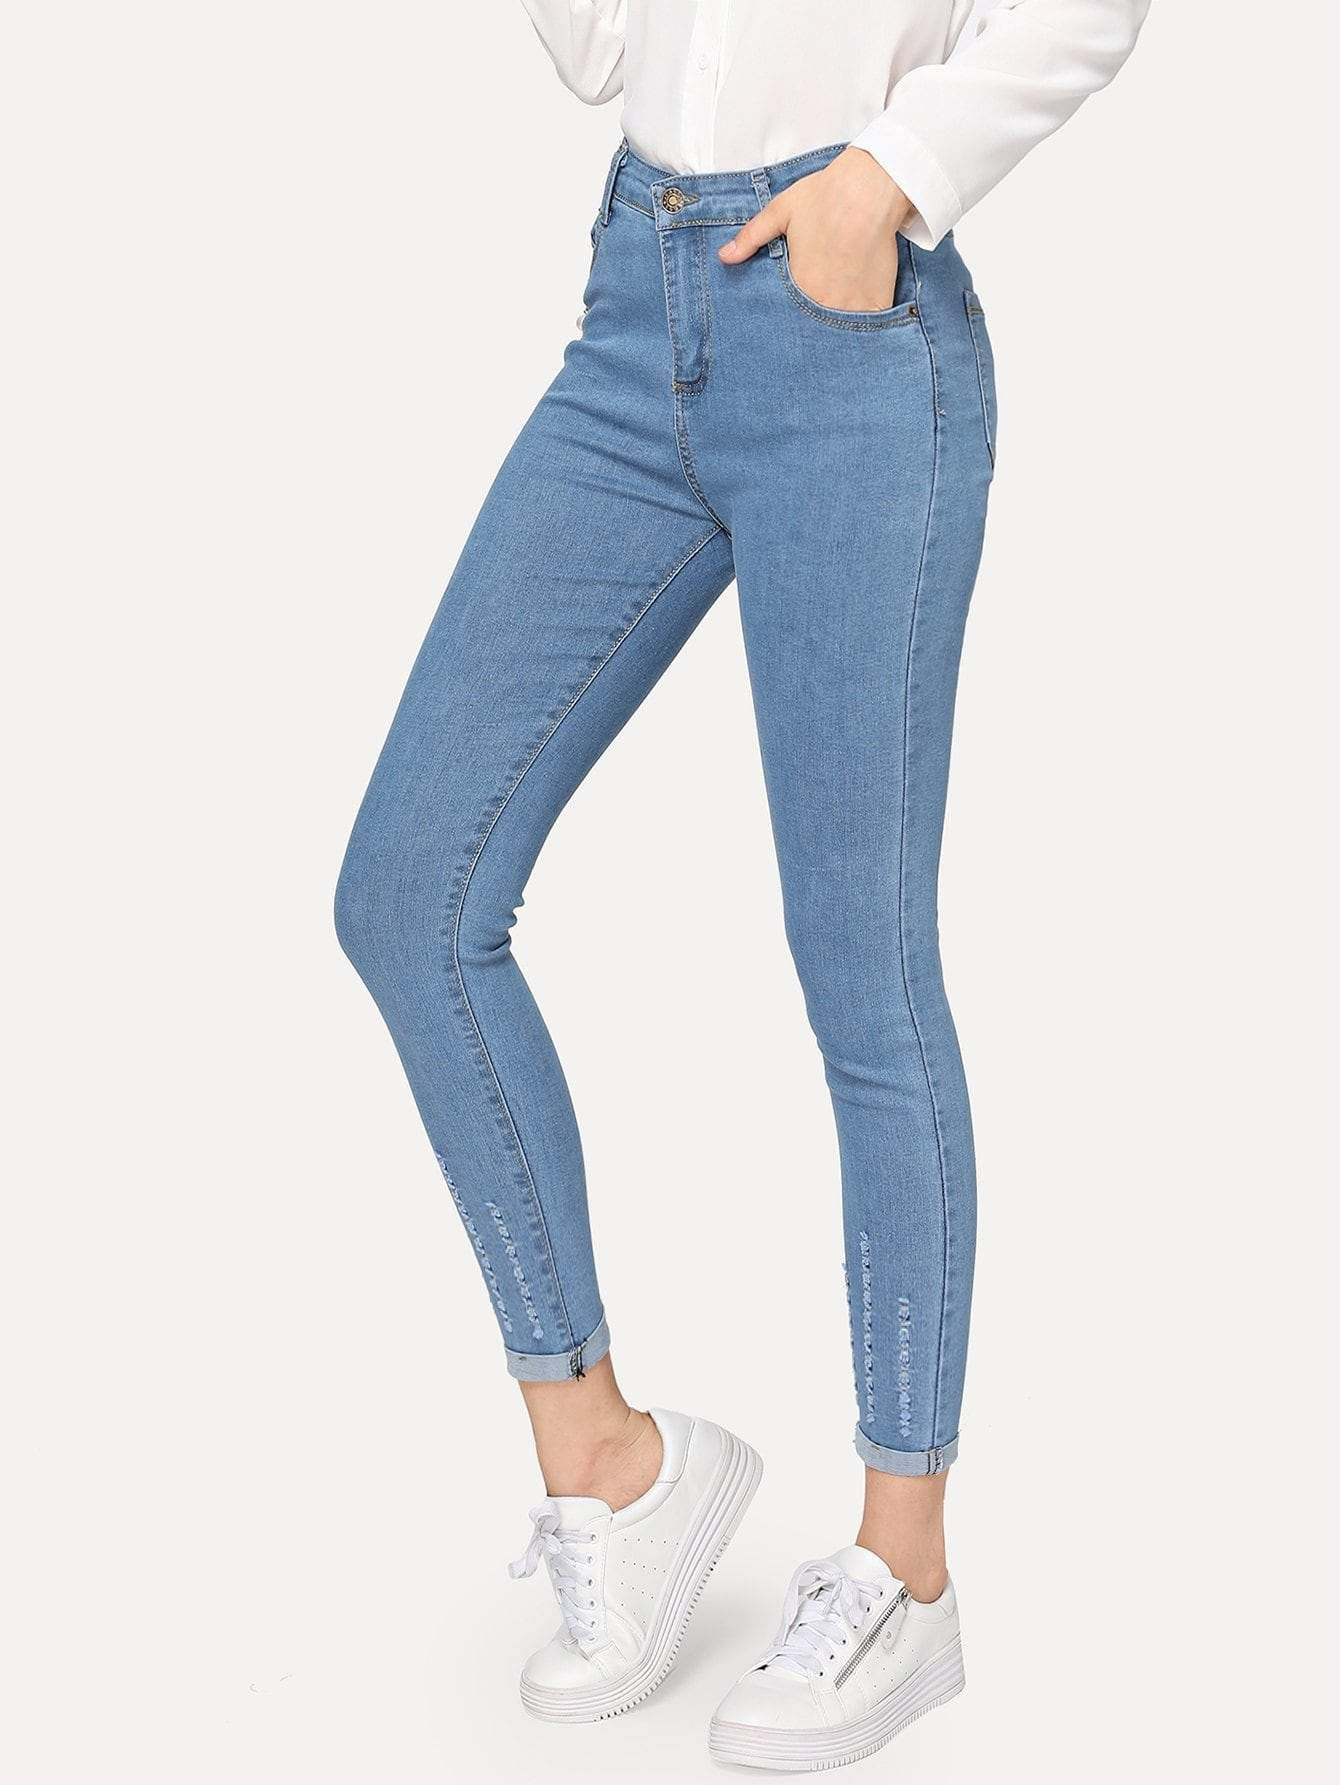 Pin On Jeans De Mujer